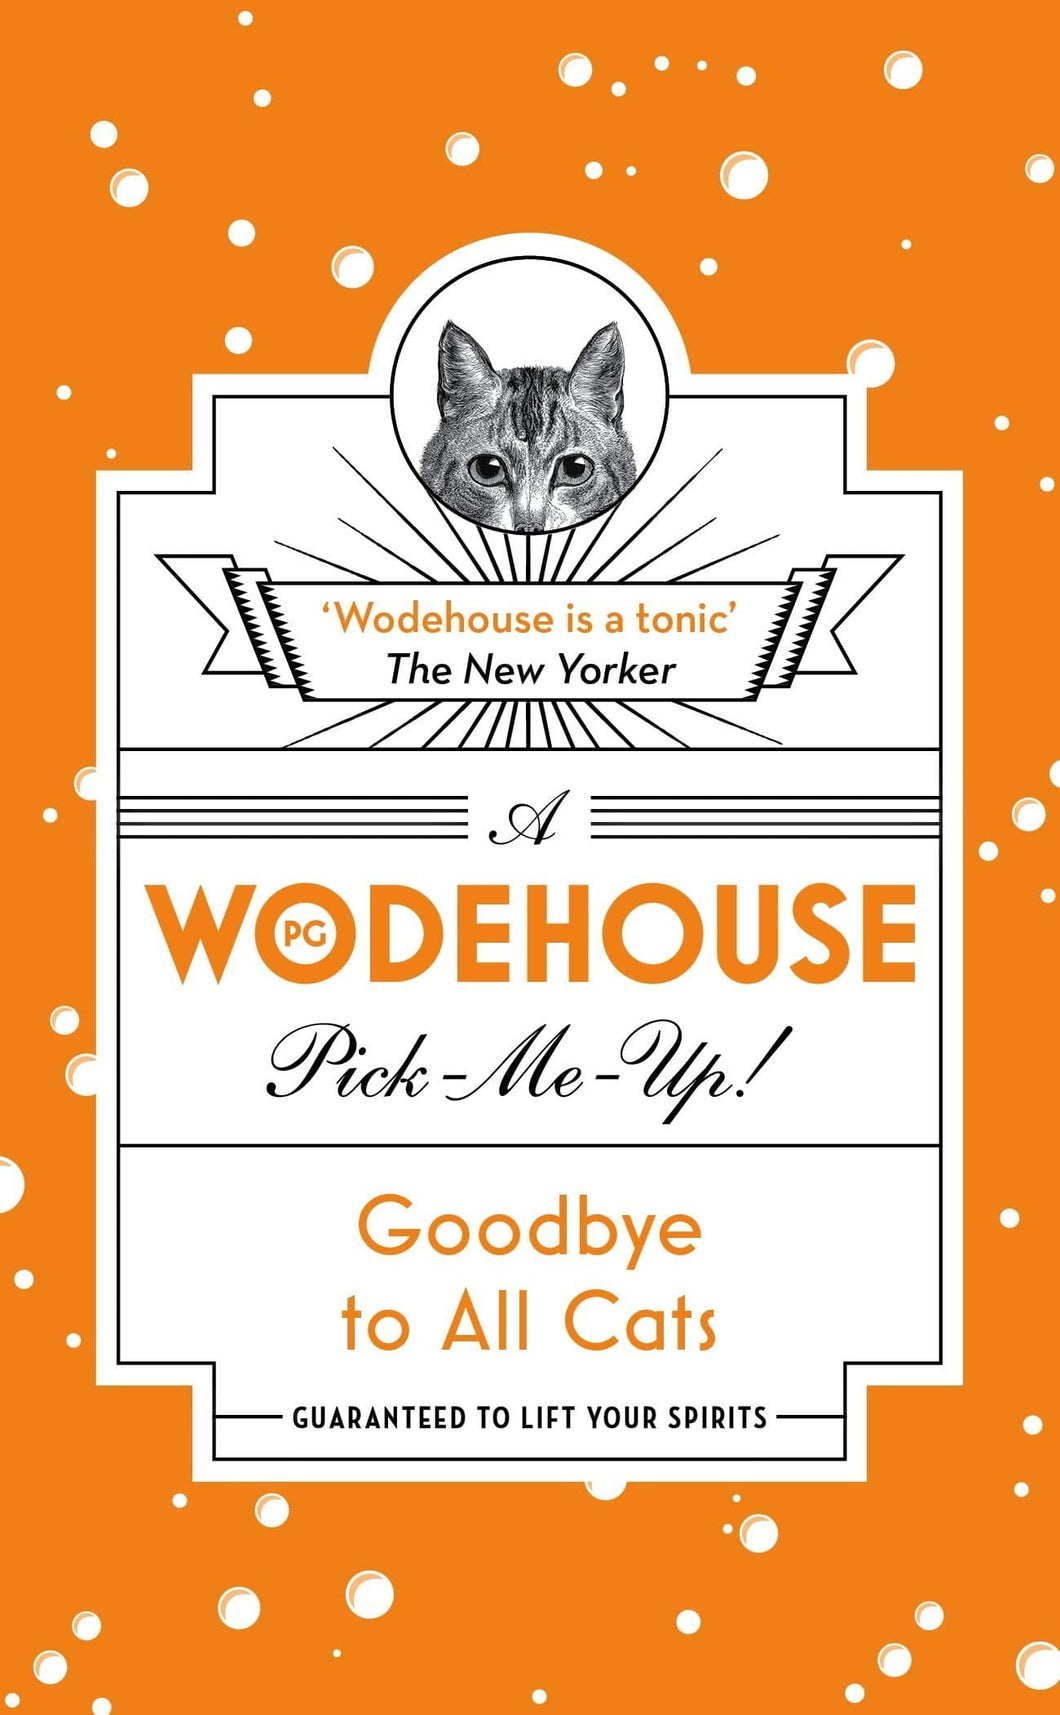 A P.G. Wodehouse Pick-Me-Up! - Goodbye to All Cats